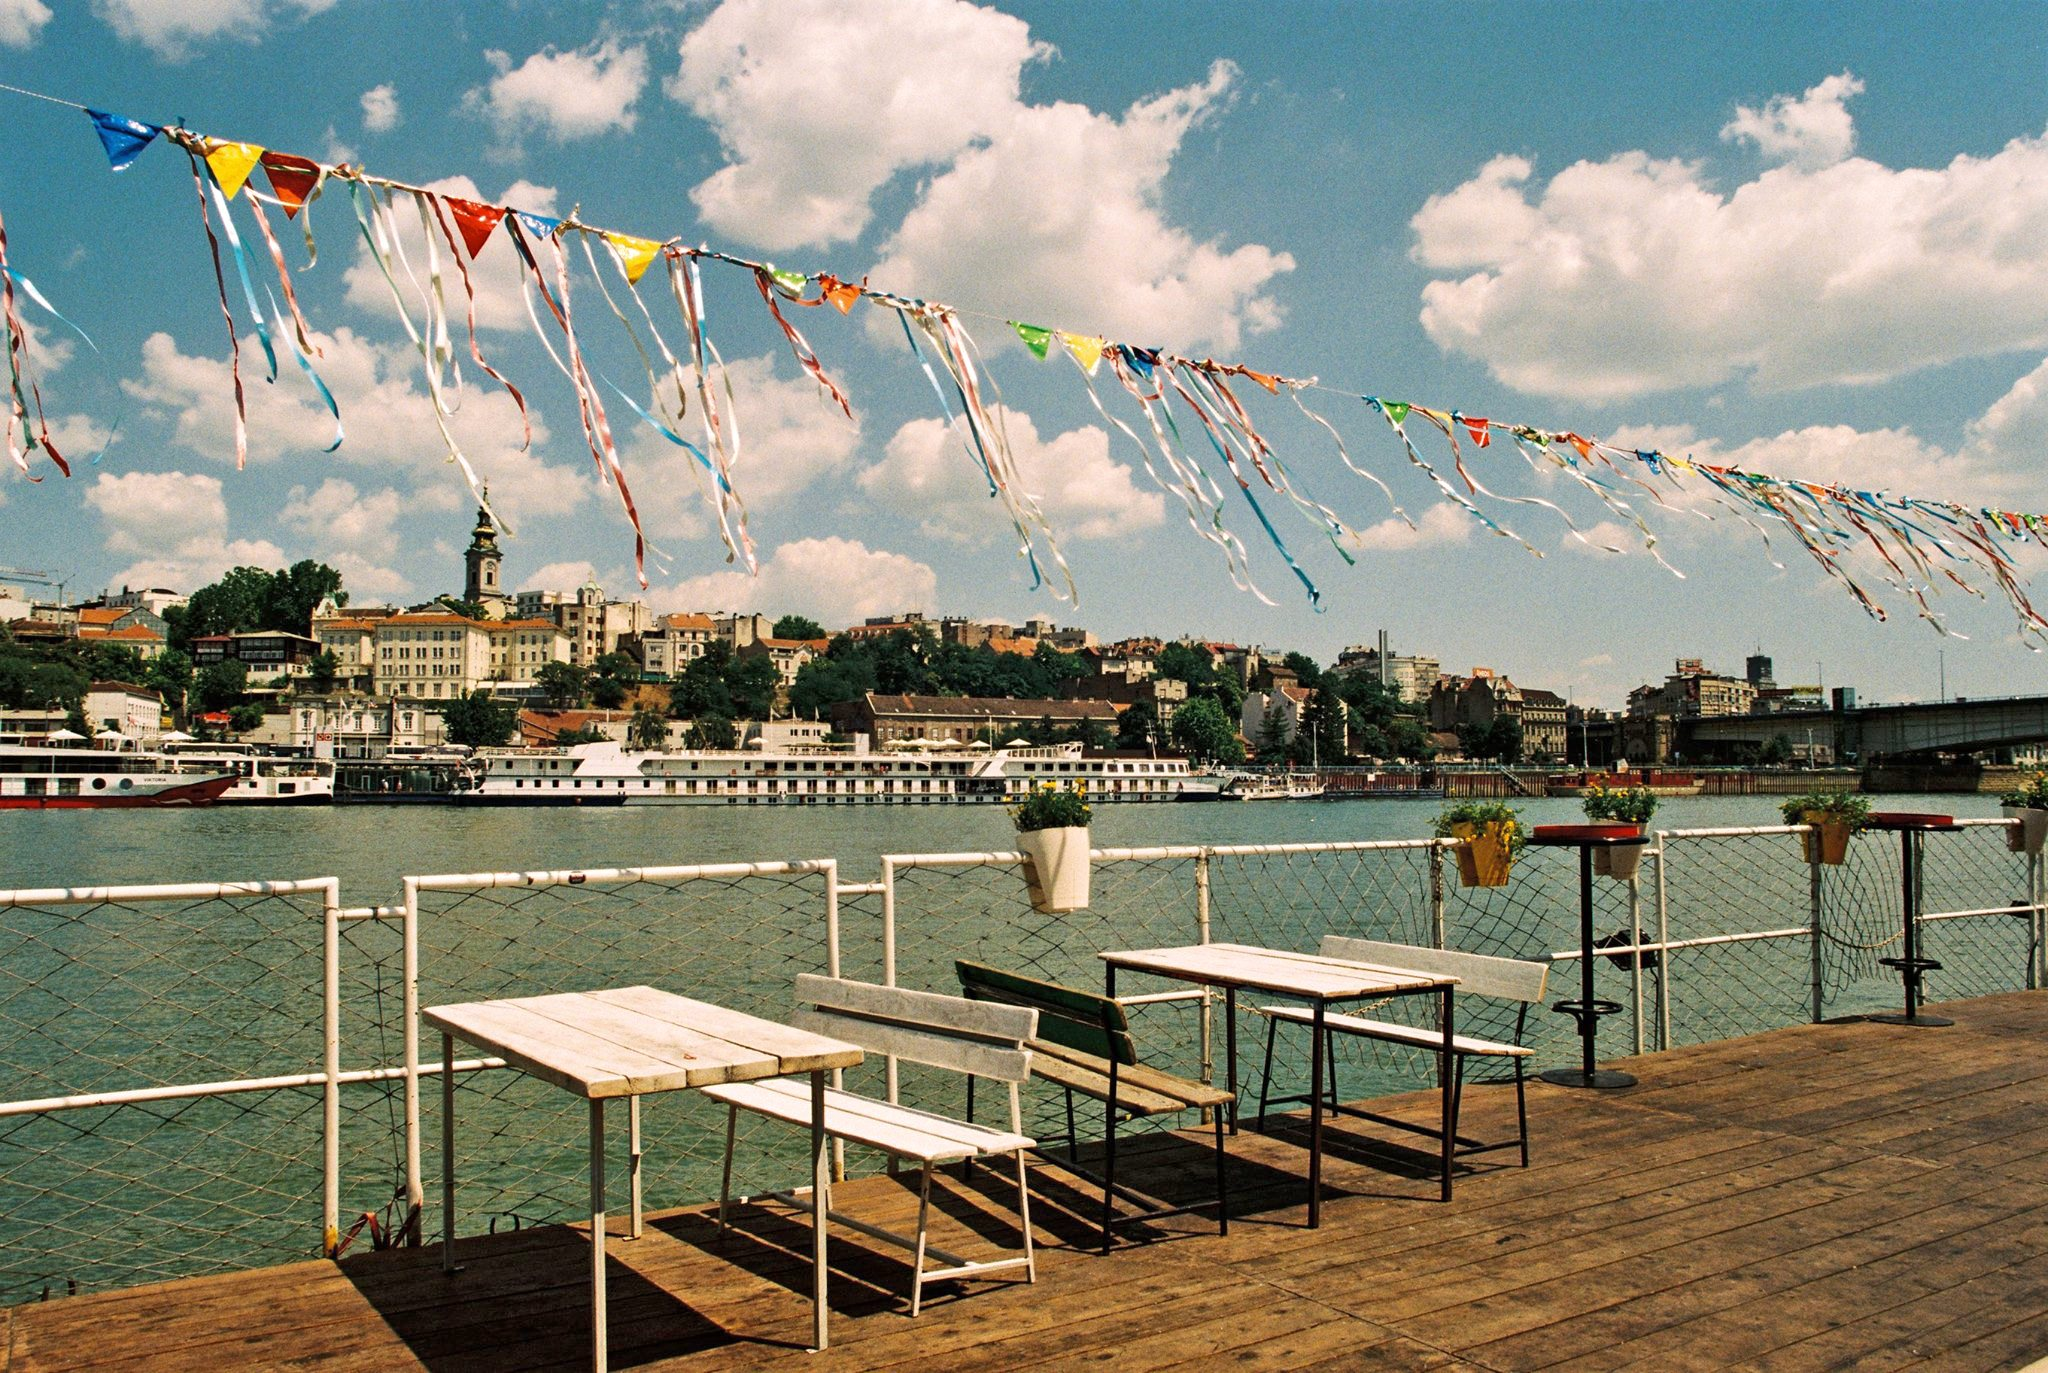 The historical city as seen from the Sava river.